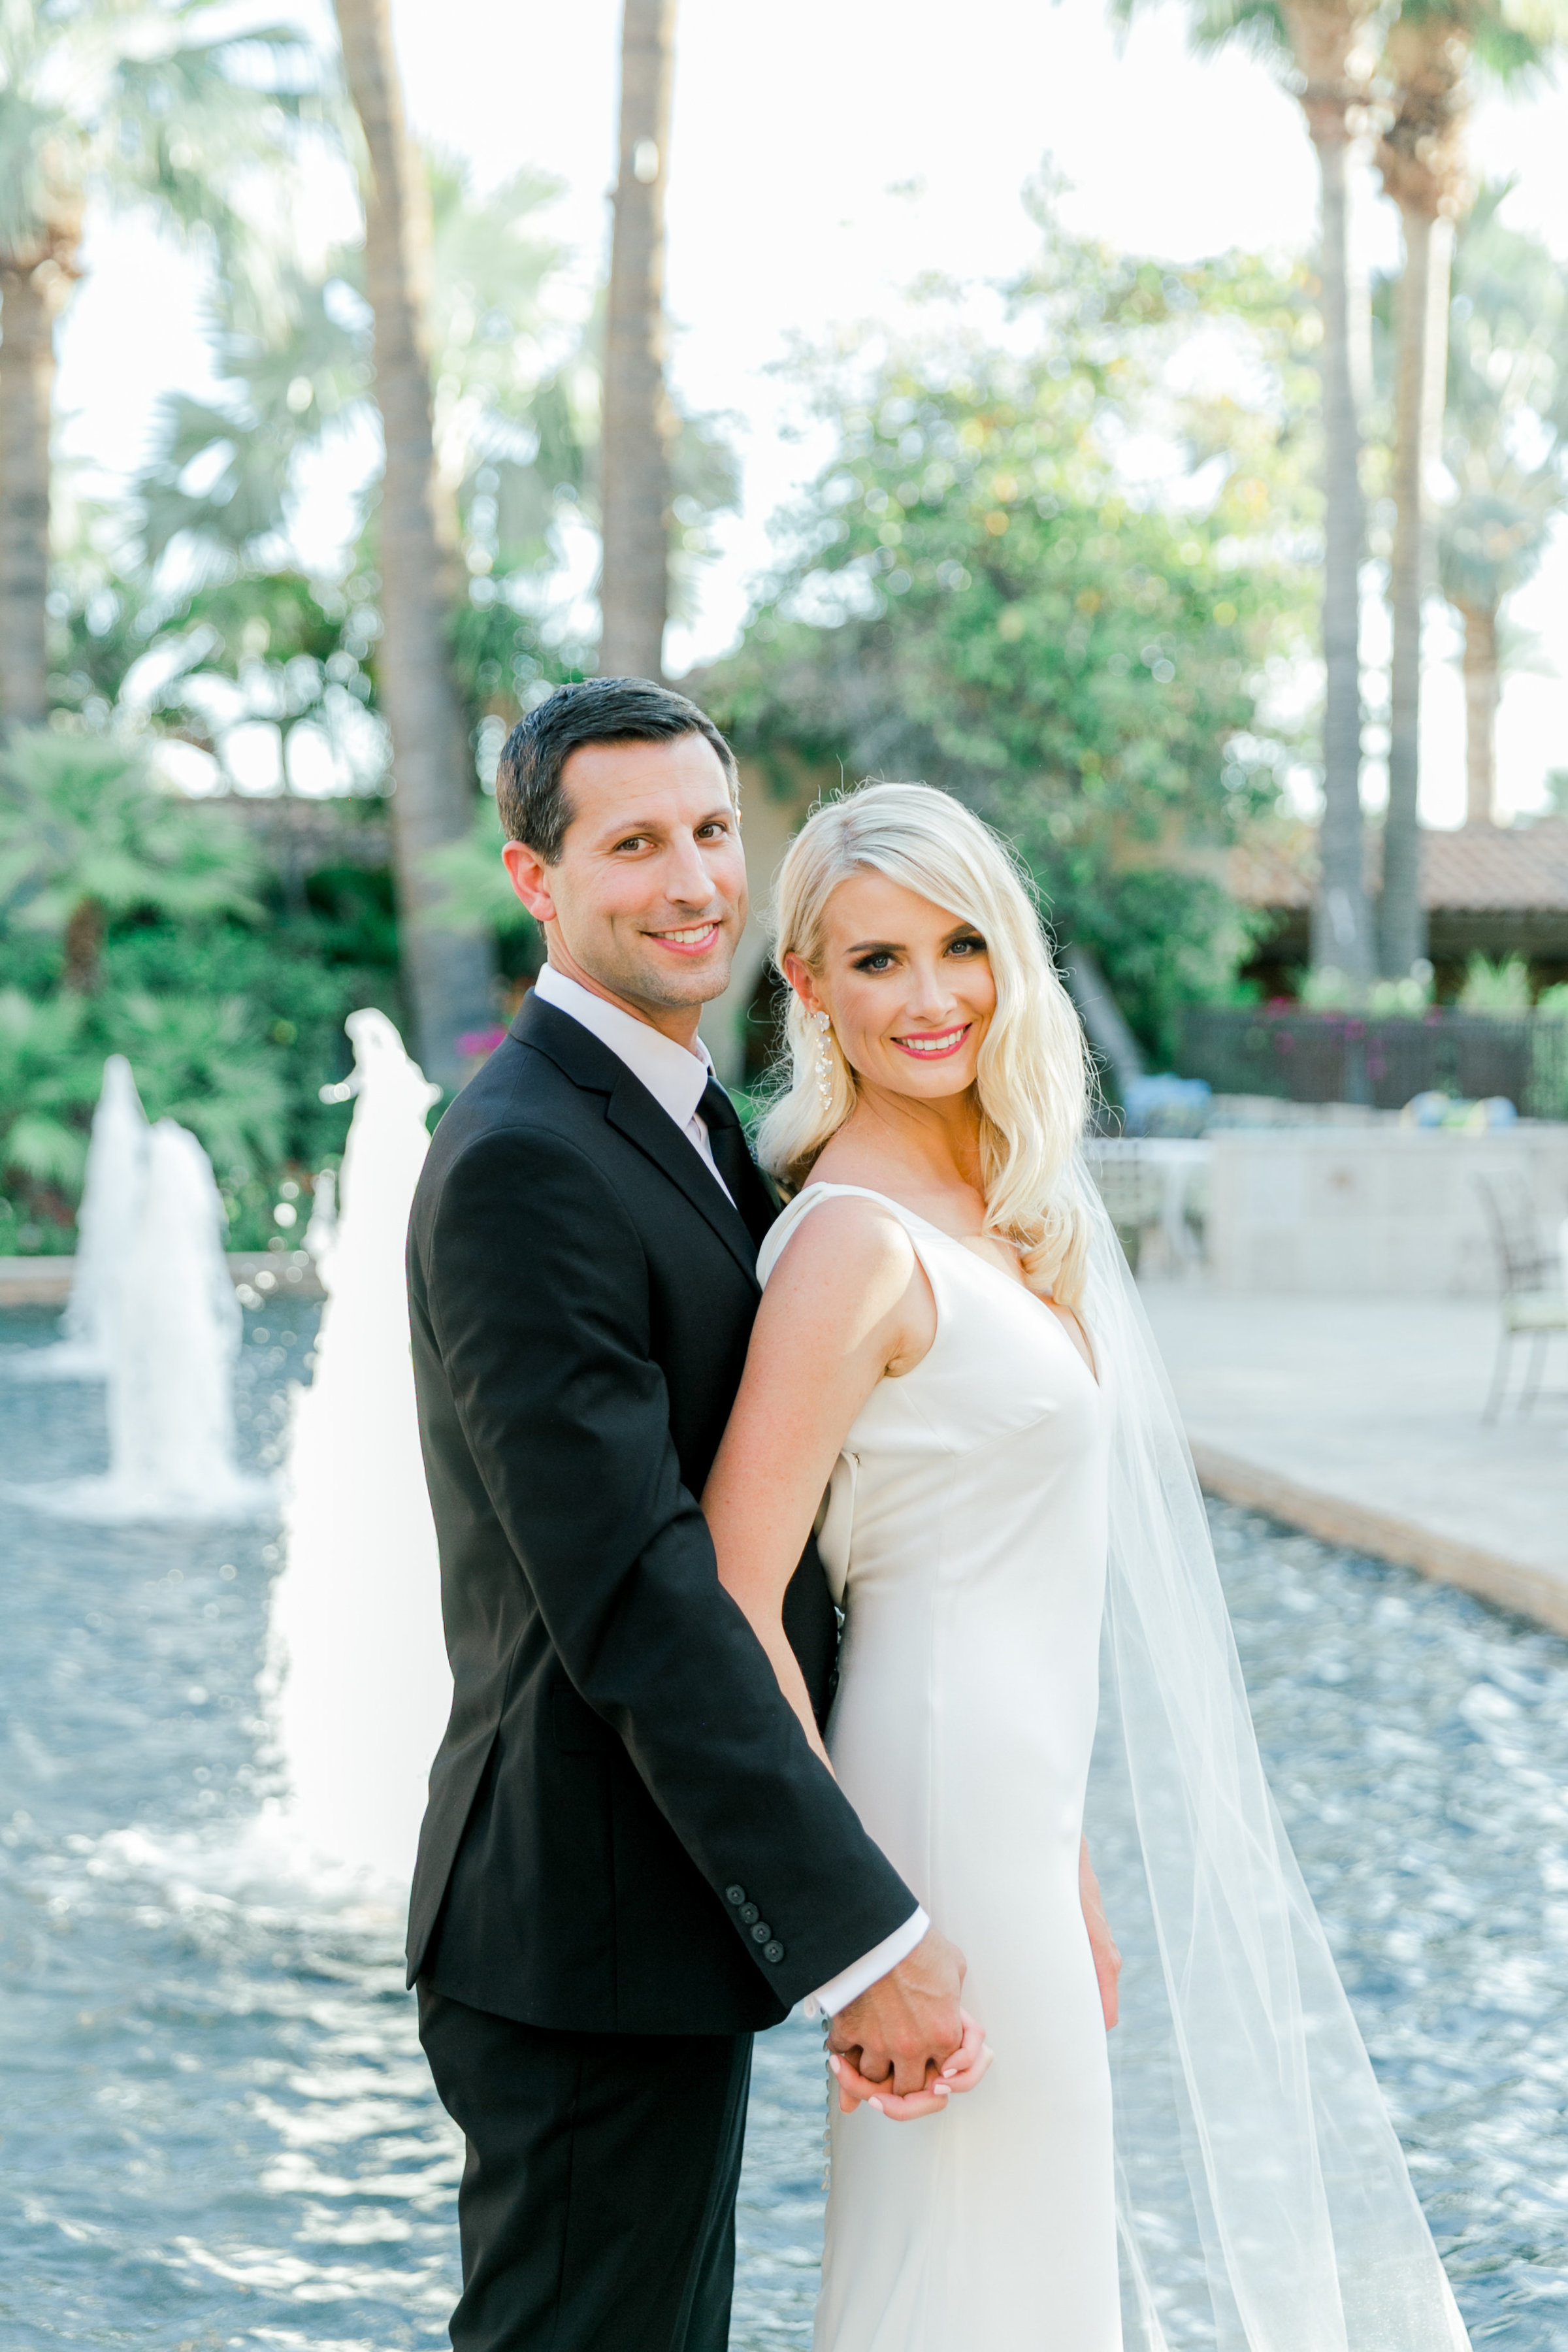 Karlie Colleen Photography - Arizona Wedding - Royal Palms Resort- Alex & Alex-137